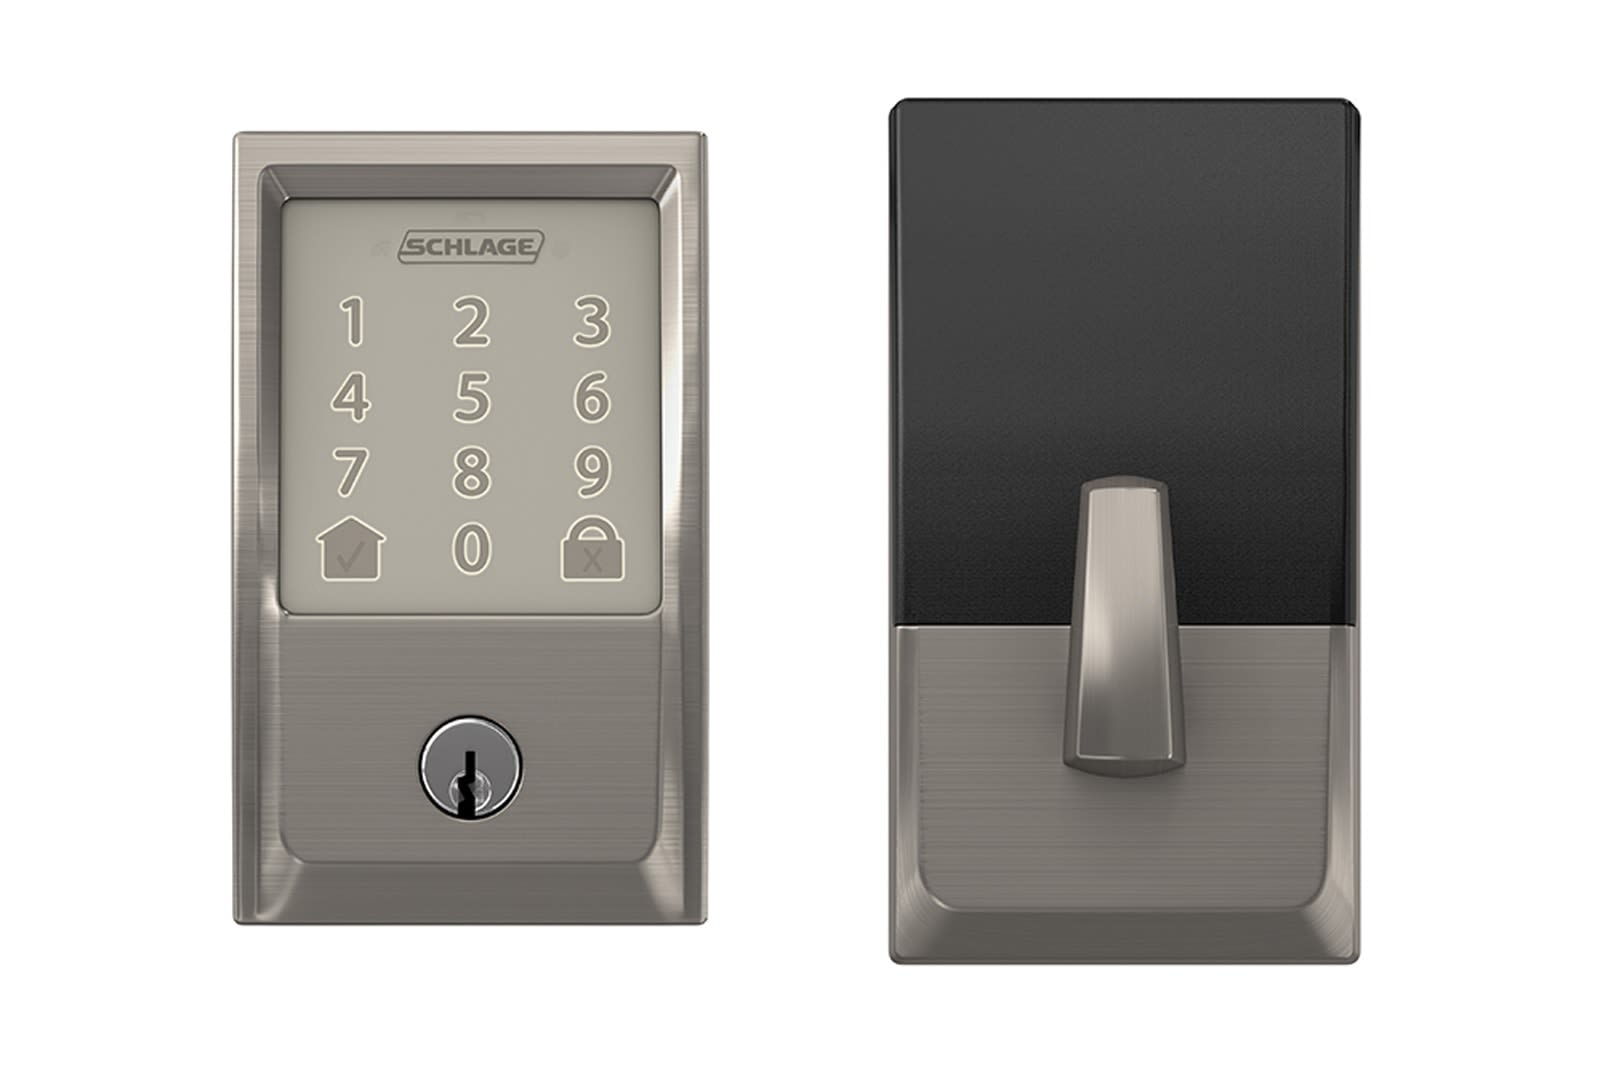 f397764ad025 Schlage s WiFi deadbolt lock can open the door for Amazon couriers